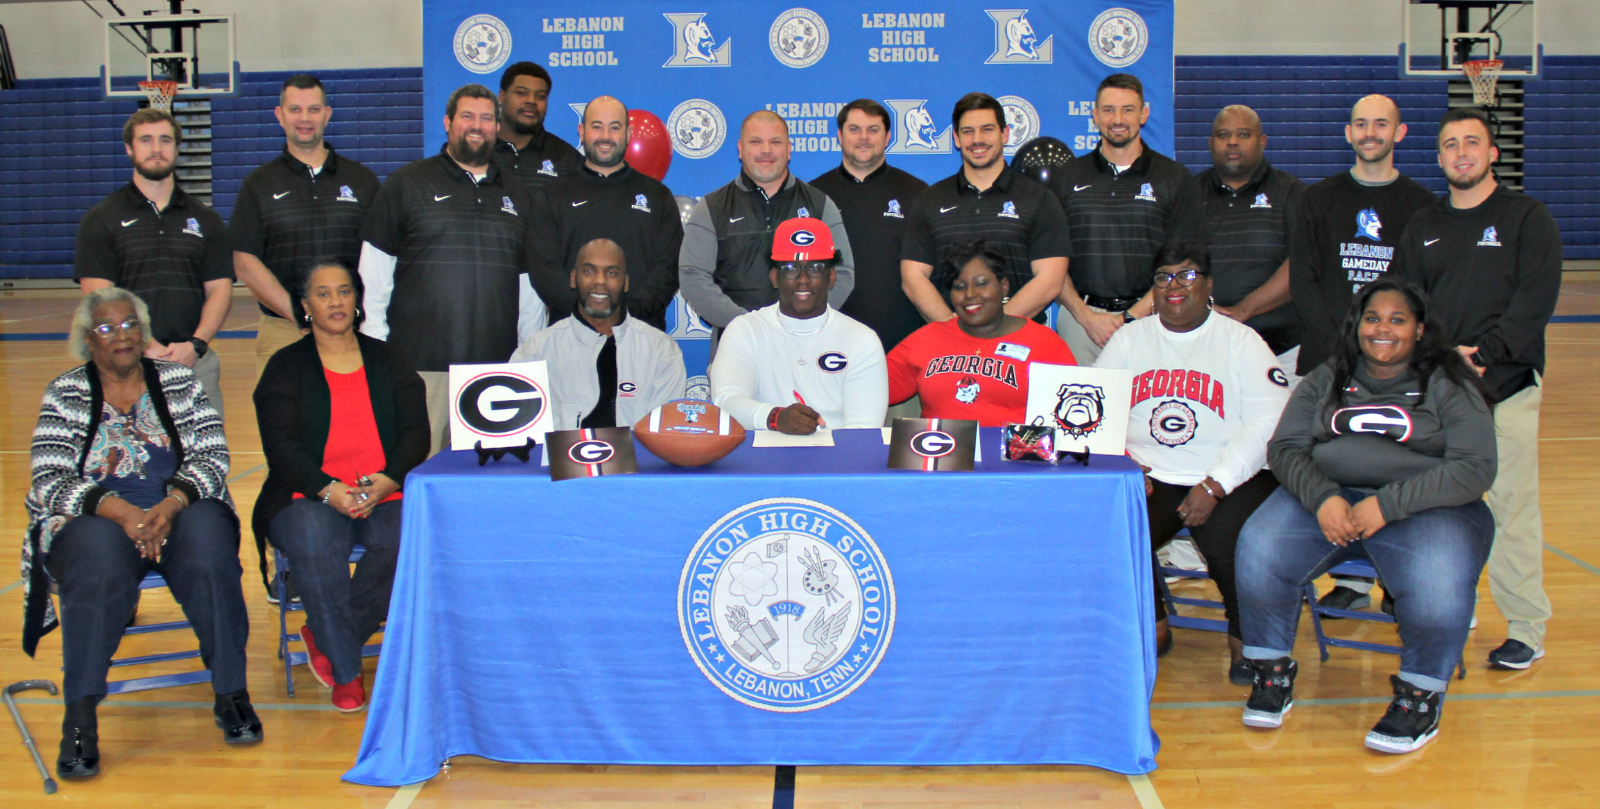 Zion Logue Signs with University of Georgia- Video by the Lebanon High School Blue Devil News Team